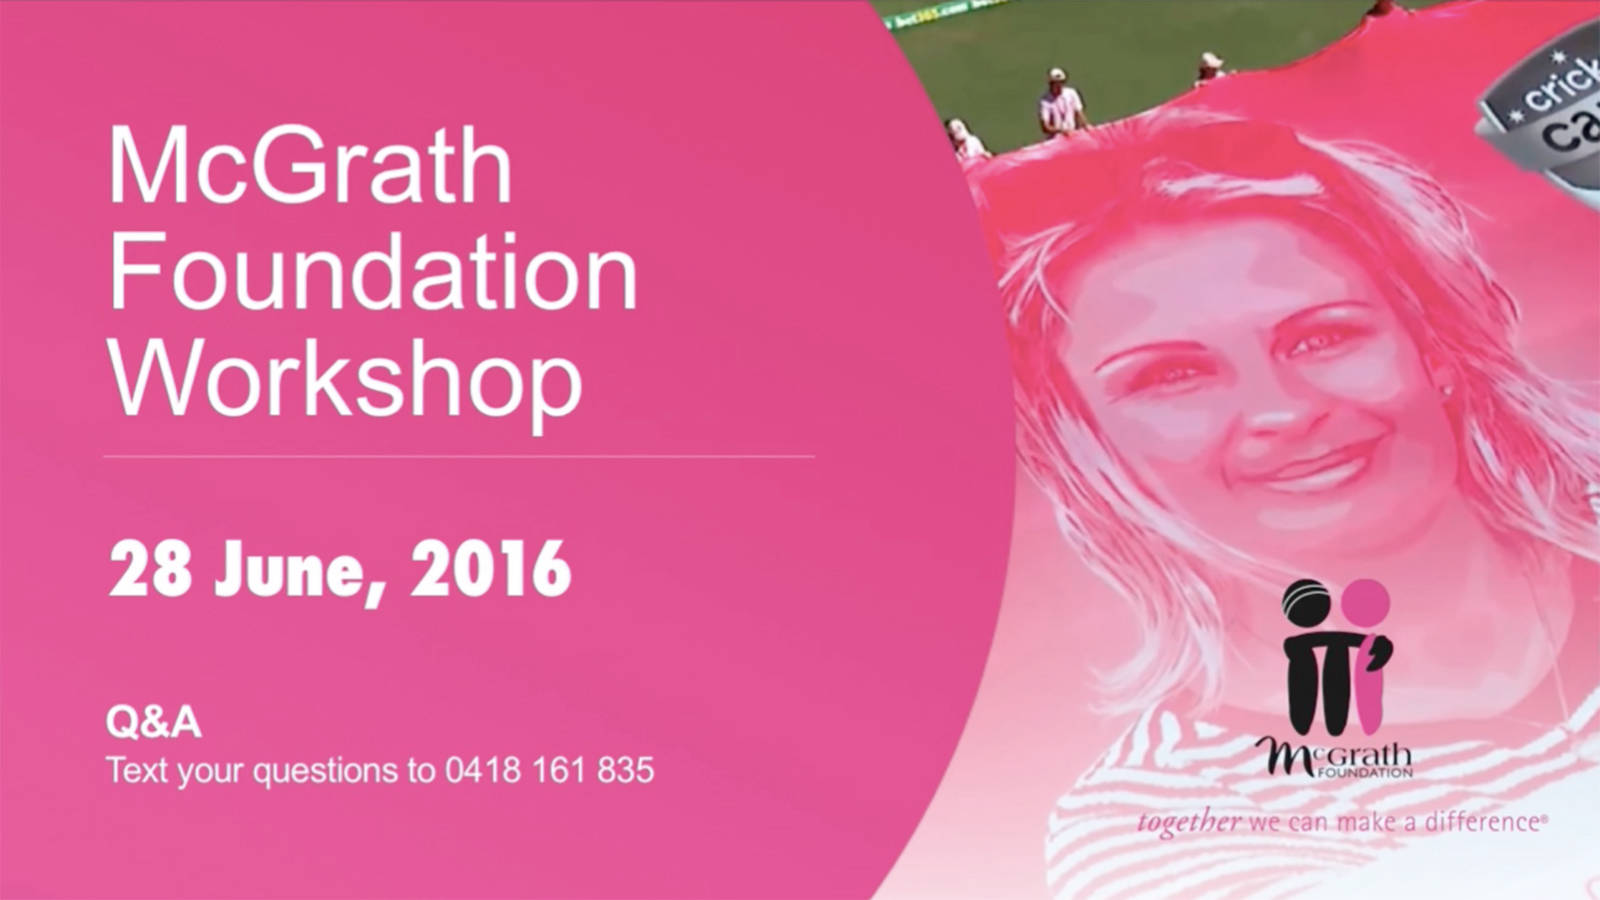 McGrath Foundation - Webcast